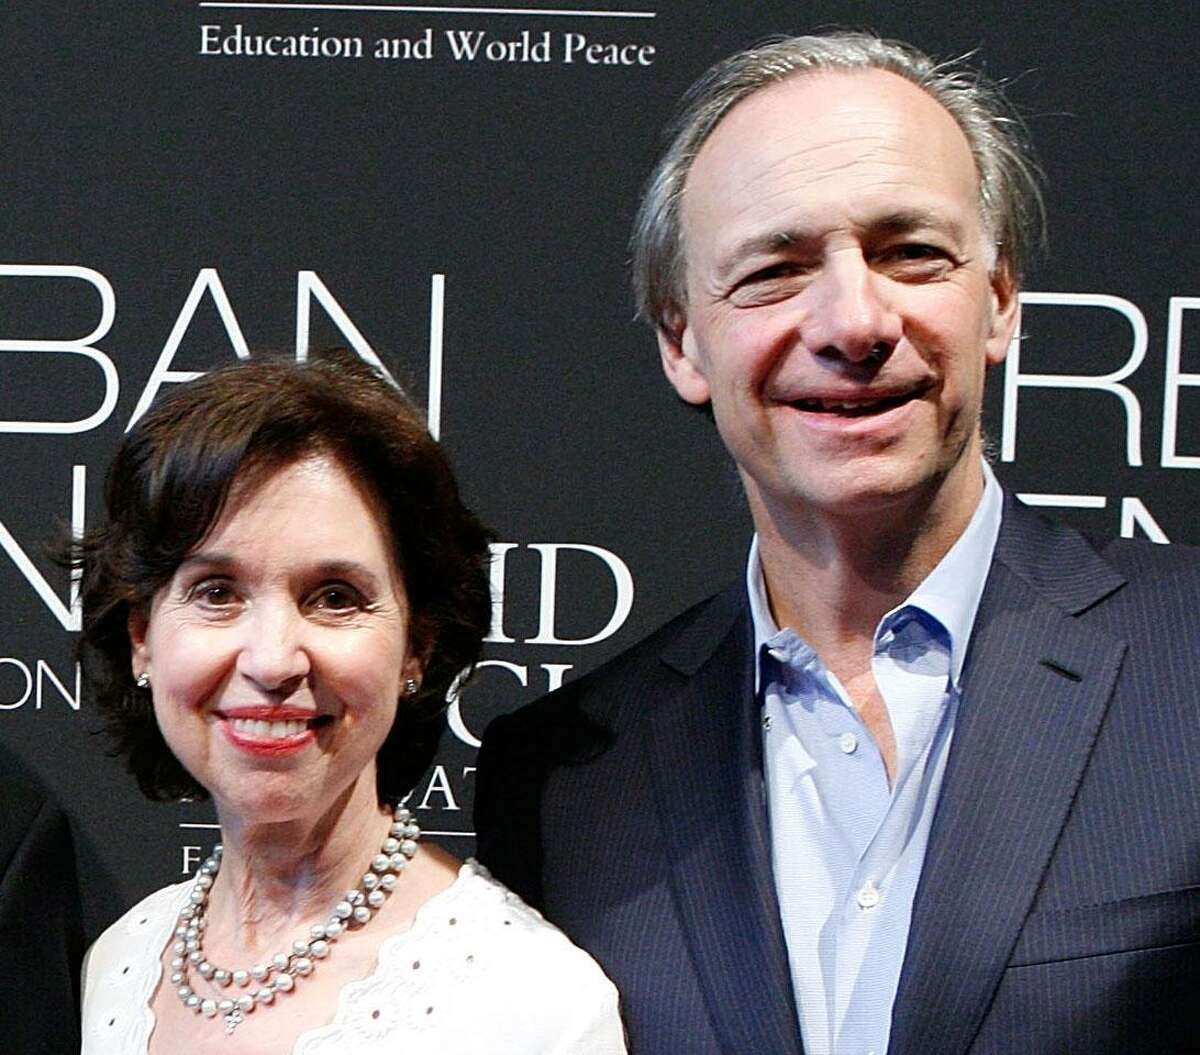 Barbara Dalio and Ray Dalio attend the Operation Warrior Wellness launch at the Urban Zen Center At Stephan Weiss Studio on June 7, 2011 in New York City.